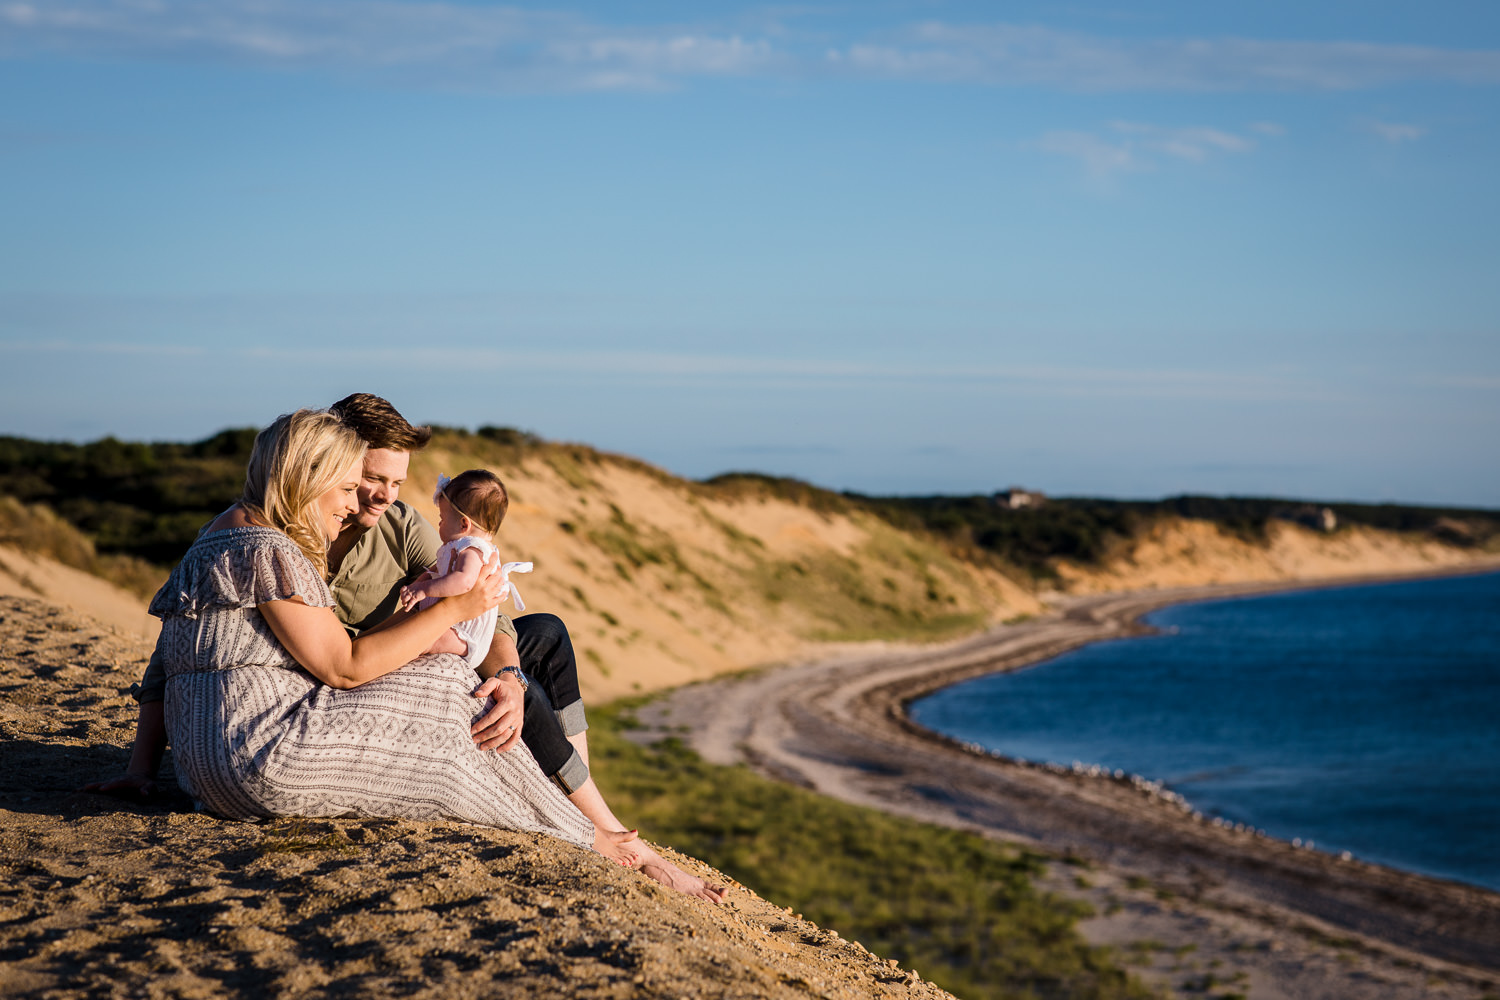 A man and woman sit at the edge of a large sand dune holding their baby girl